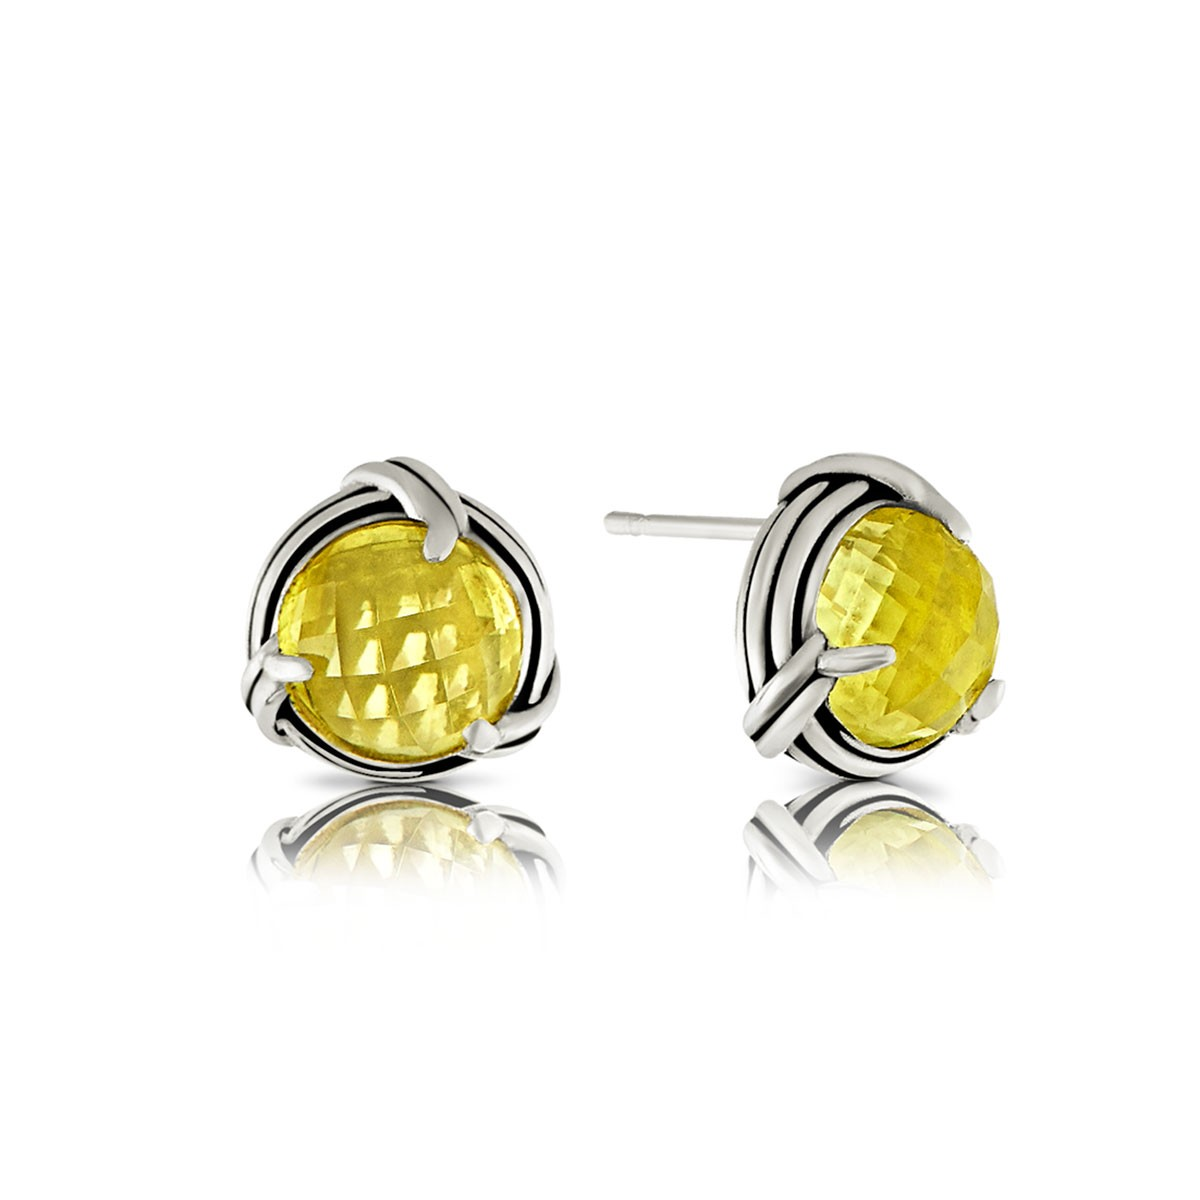 studs glittering trouvee restocked worn earrings citrine stud products co